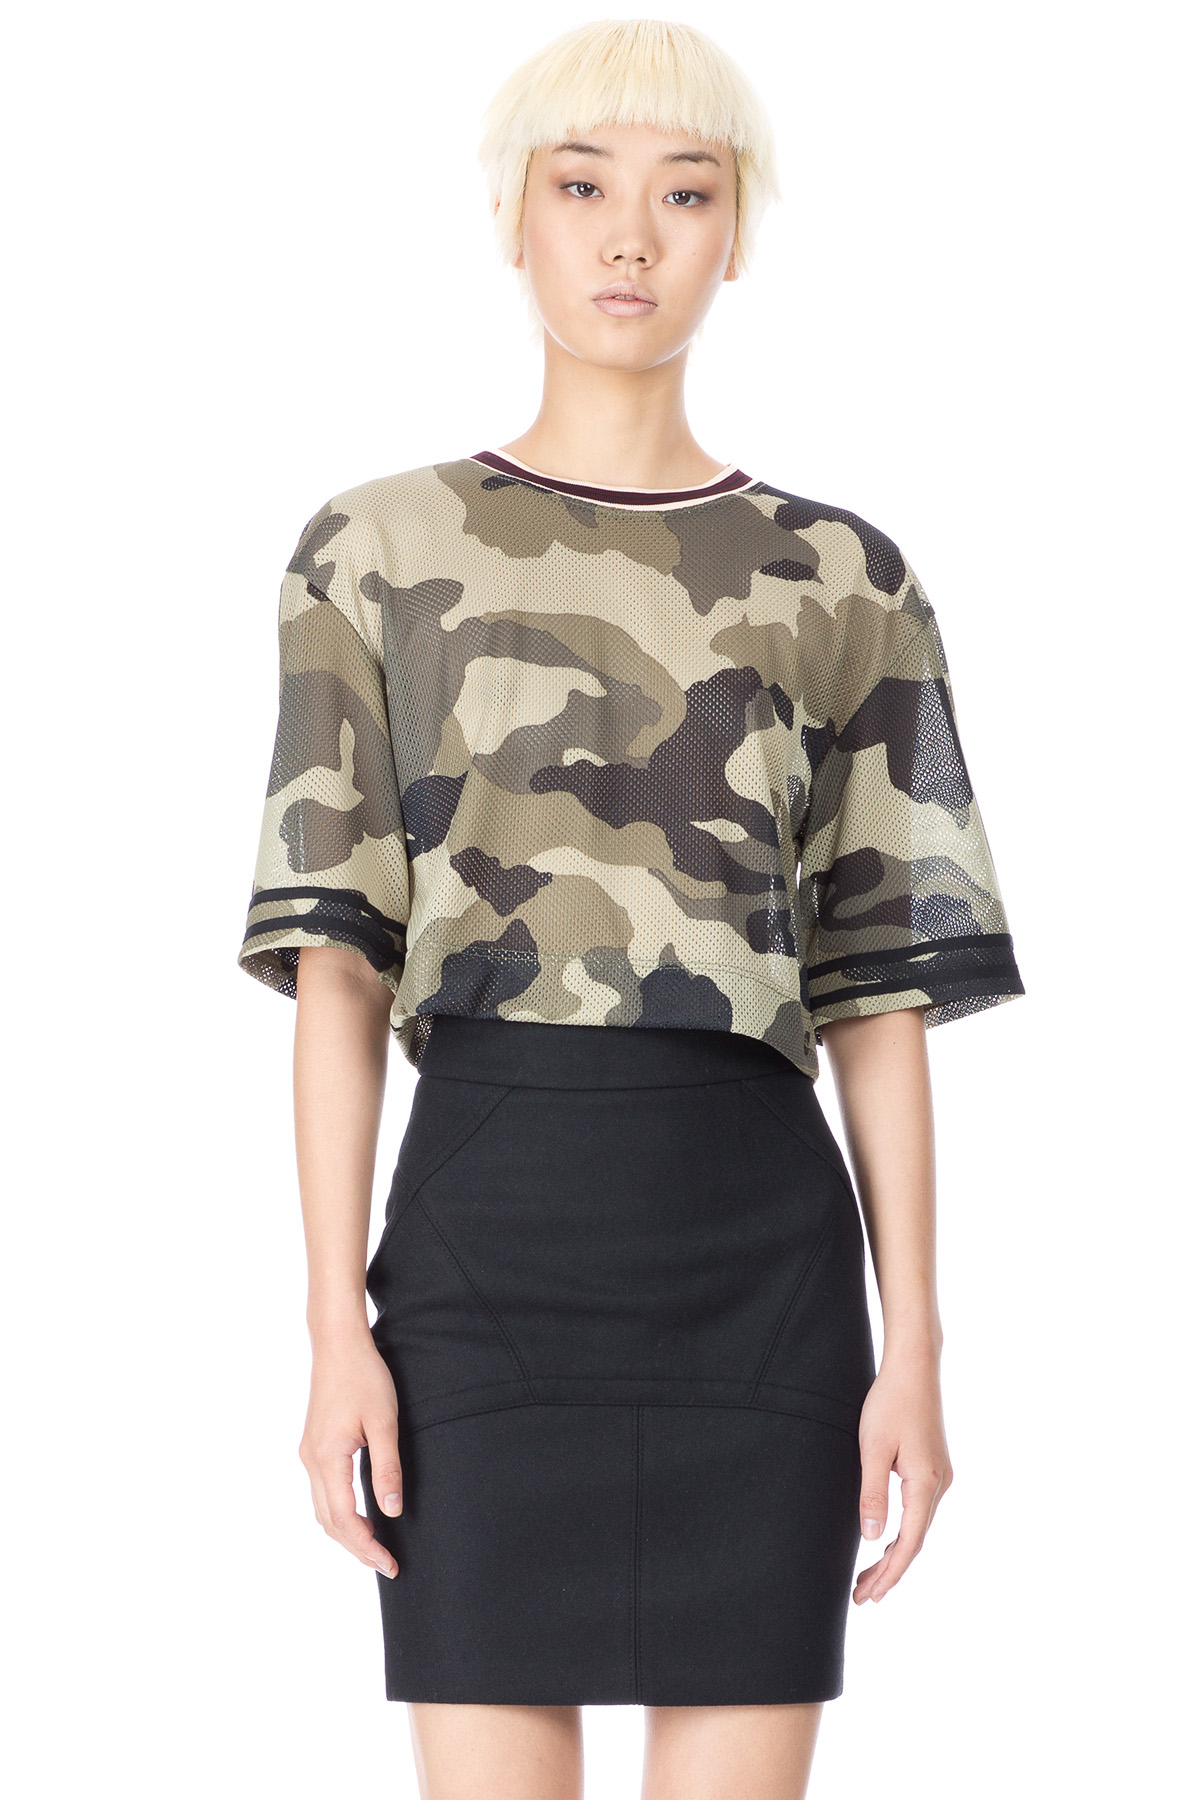 RIHANNA FOR RIVER ISLAND MESH CROPPED BASKETBALL T - WOMEN - RIHANNA FOR RIVER ISLAND